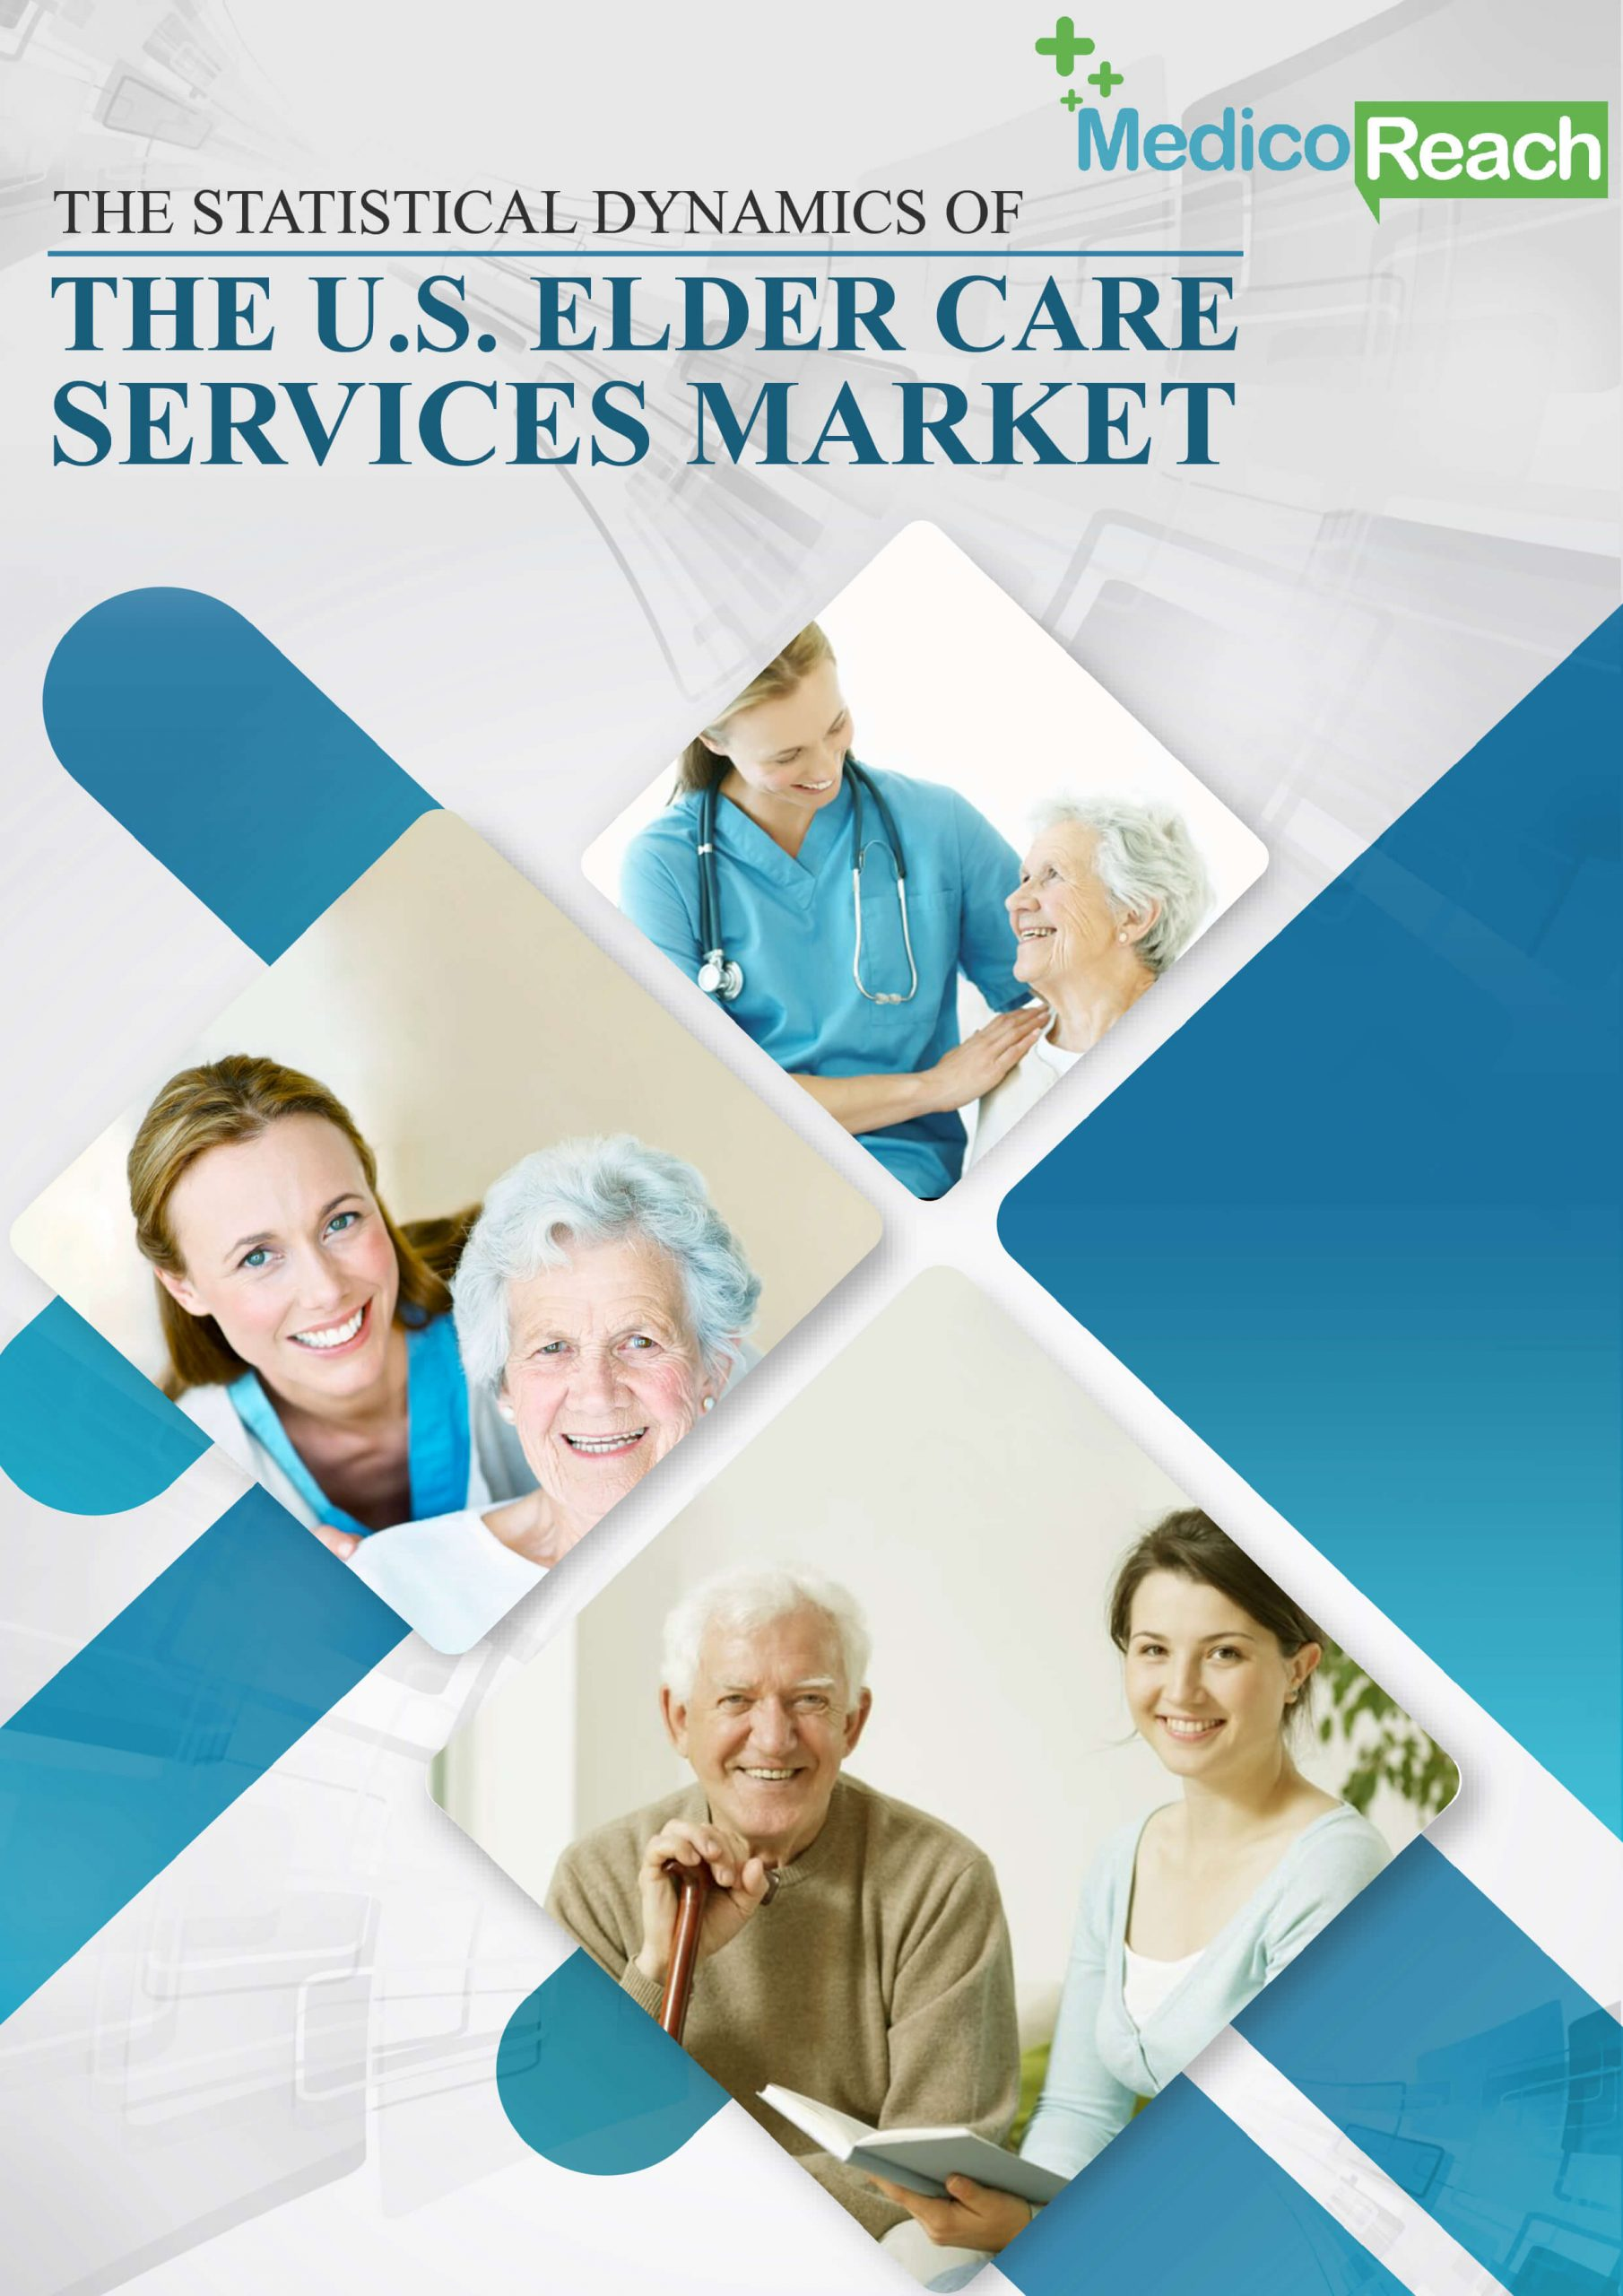 The Statistical Dynamics of the U.S. Elder Care Services Market